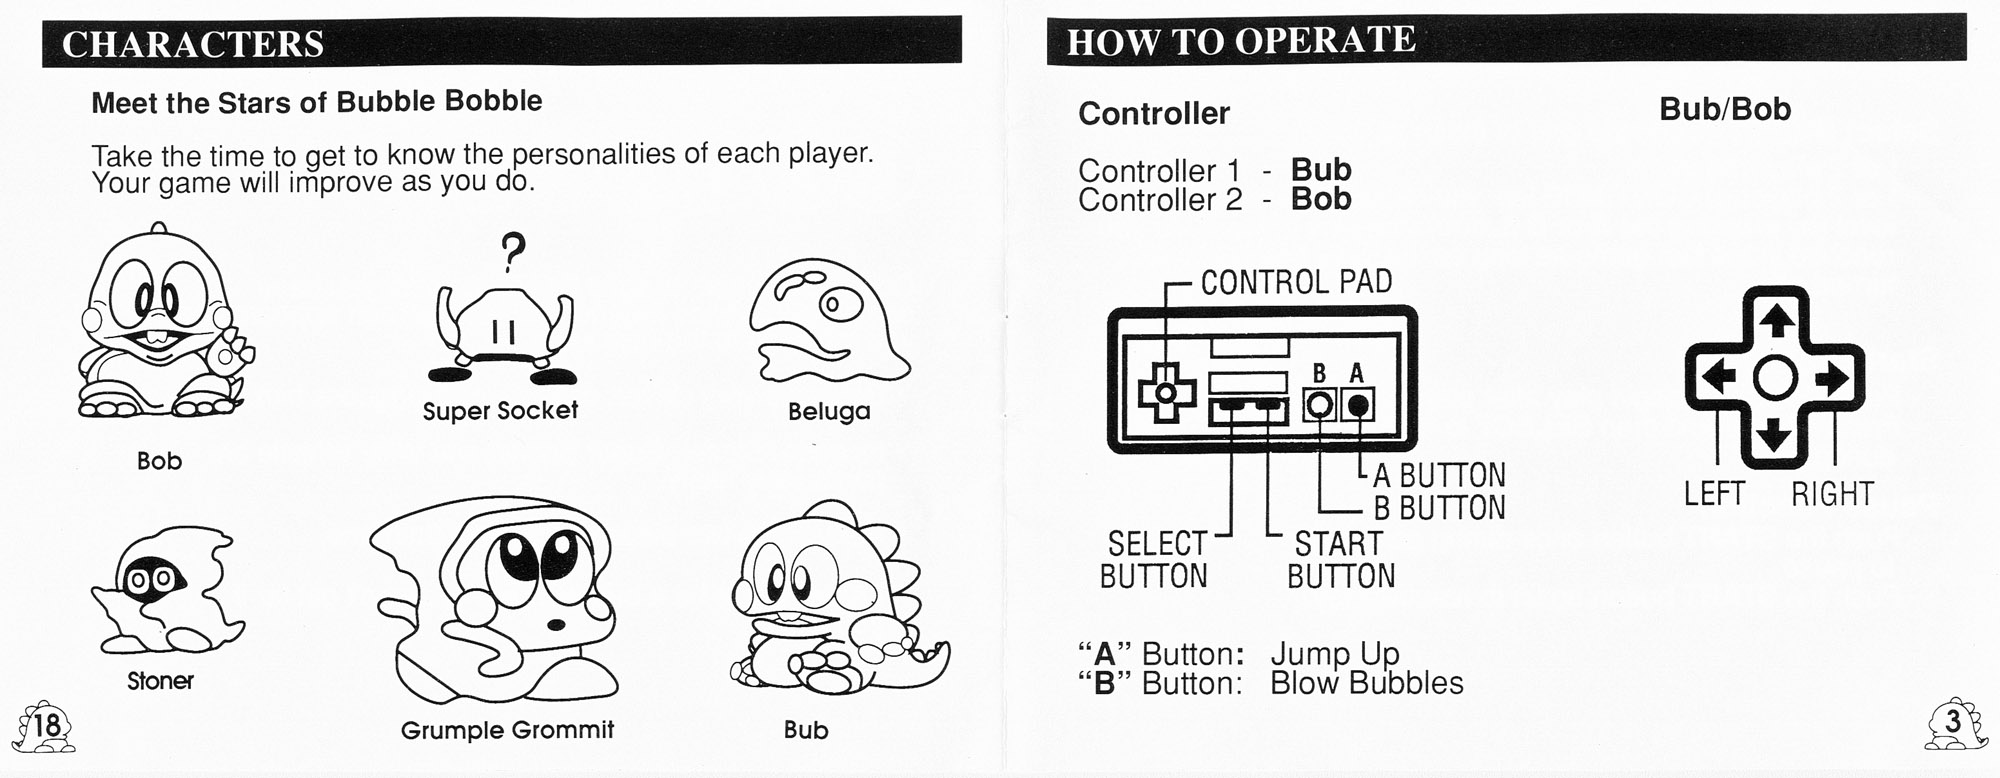 Photo 65 of 274, Nintendo NES manuals